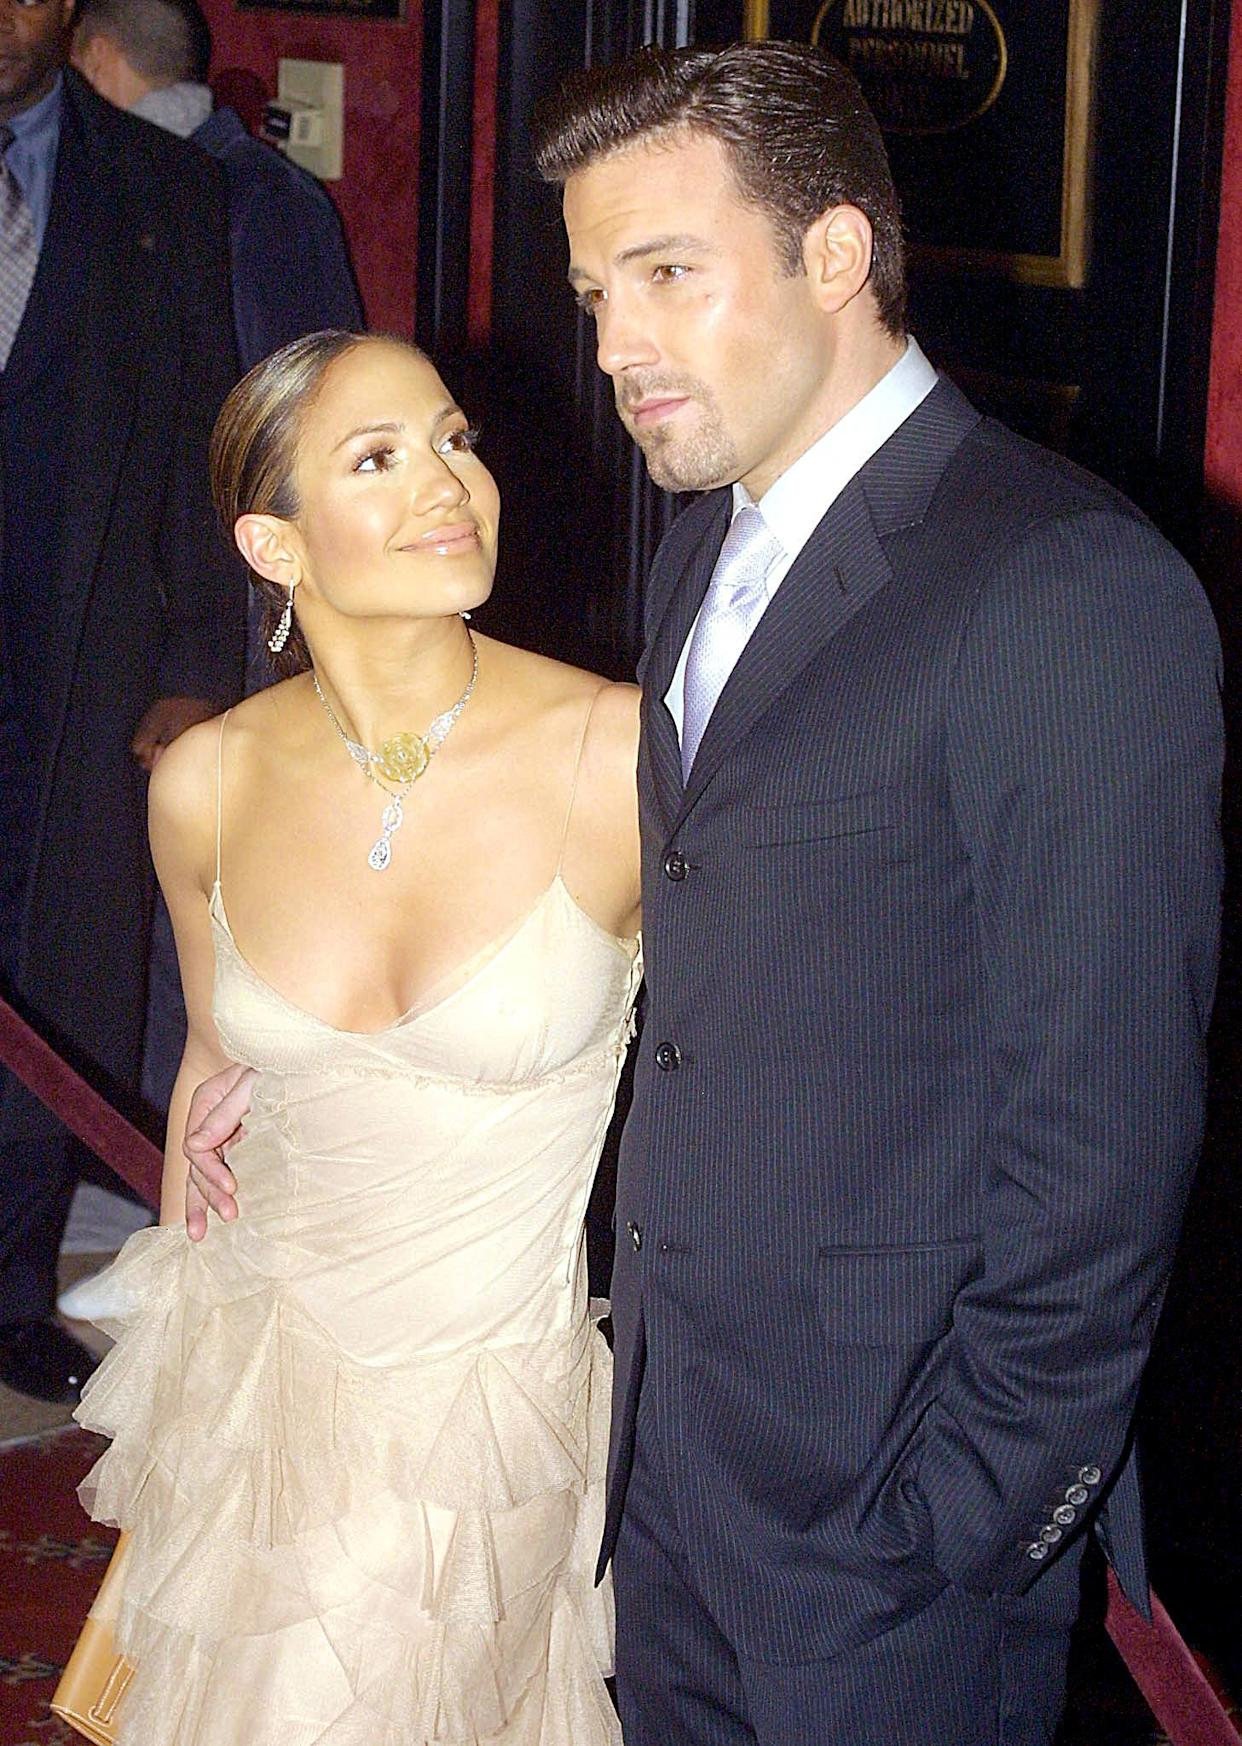 Jennifer Lopez and Ben Affleck arrive at the premiere of Lopez's new film 'Maid in Manhattan' in New York City on 8 December 2002. (Getty Images)